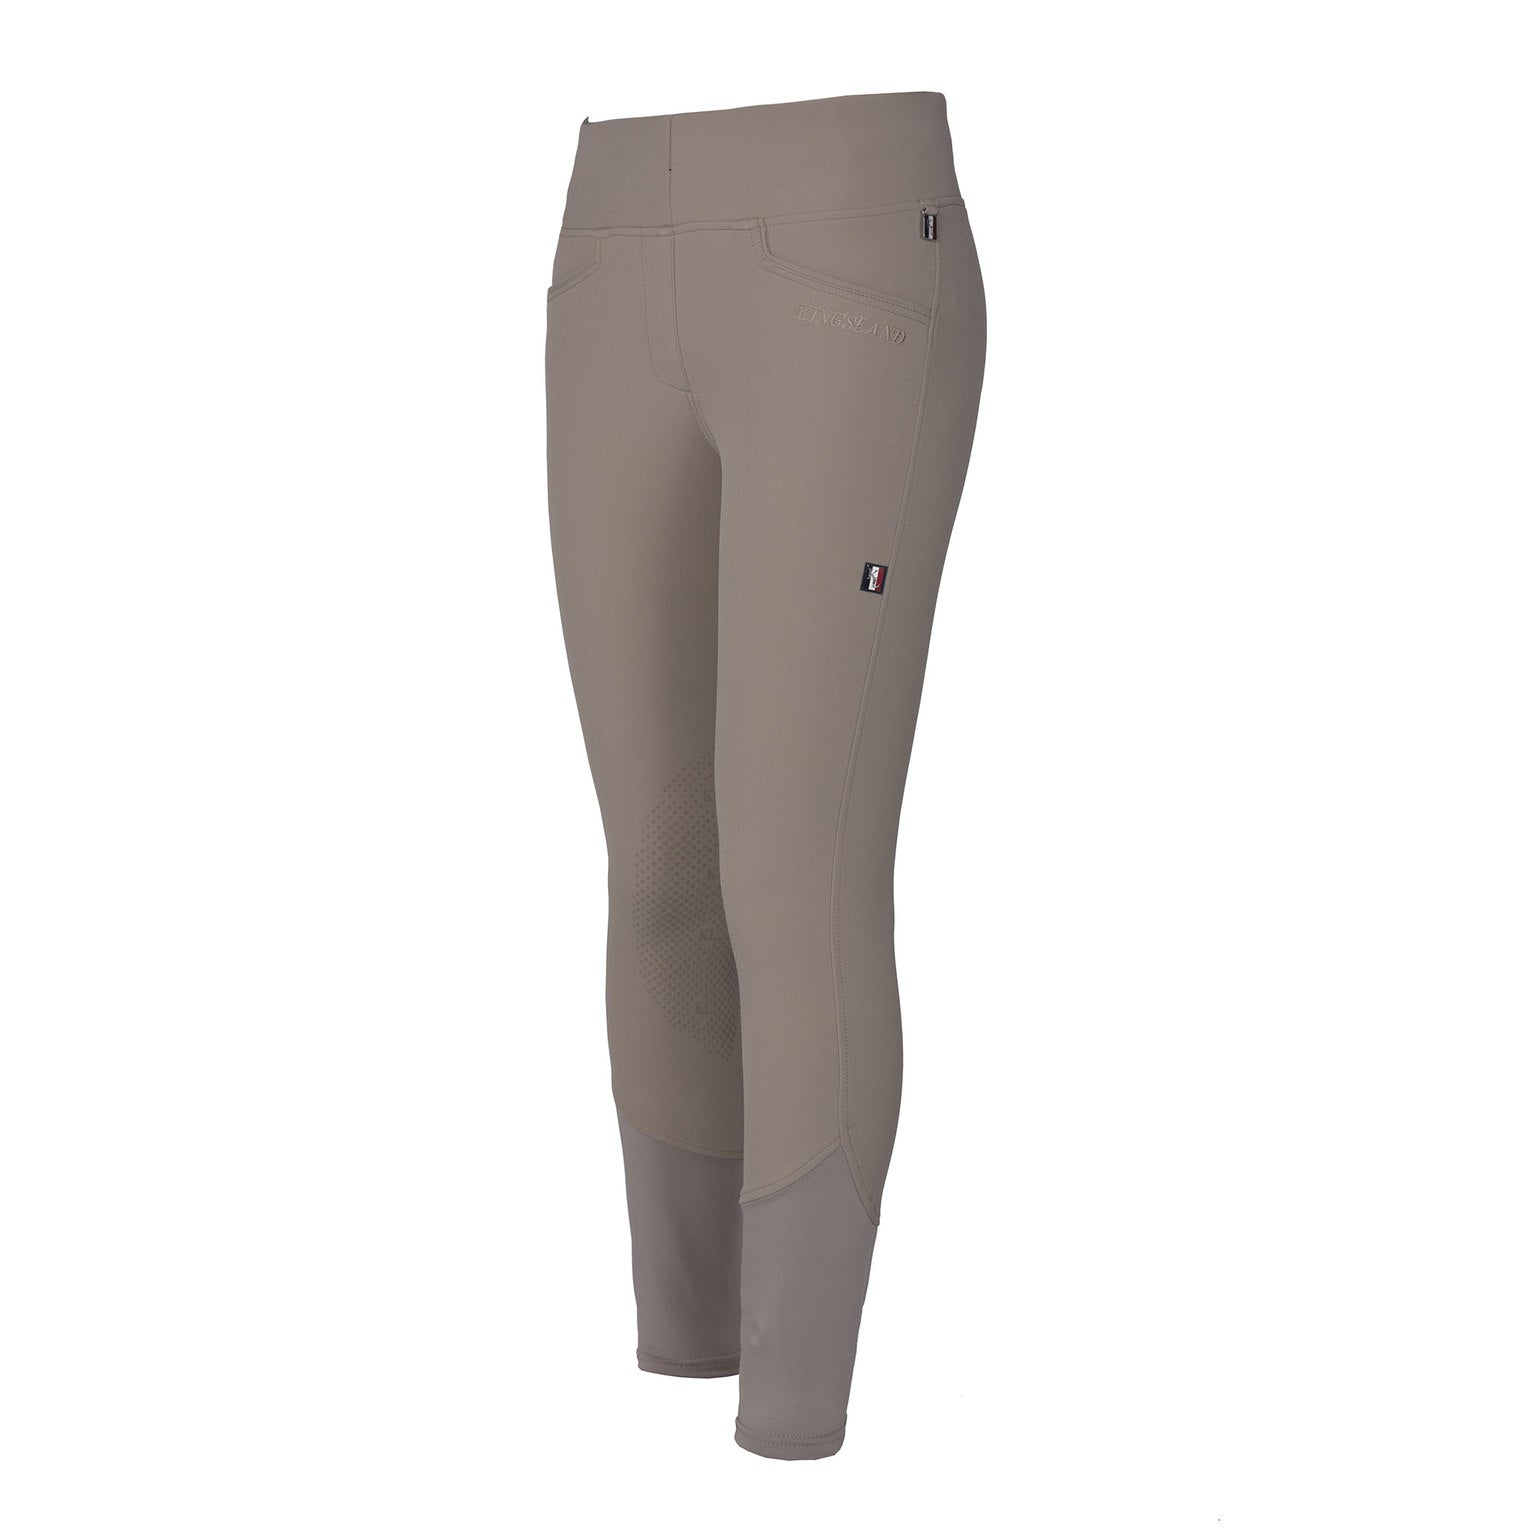 KATJA W E-TEC Knee-GRIP PULLON BREECHES